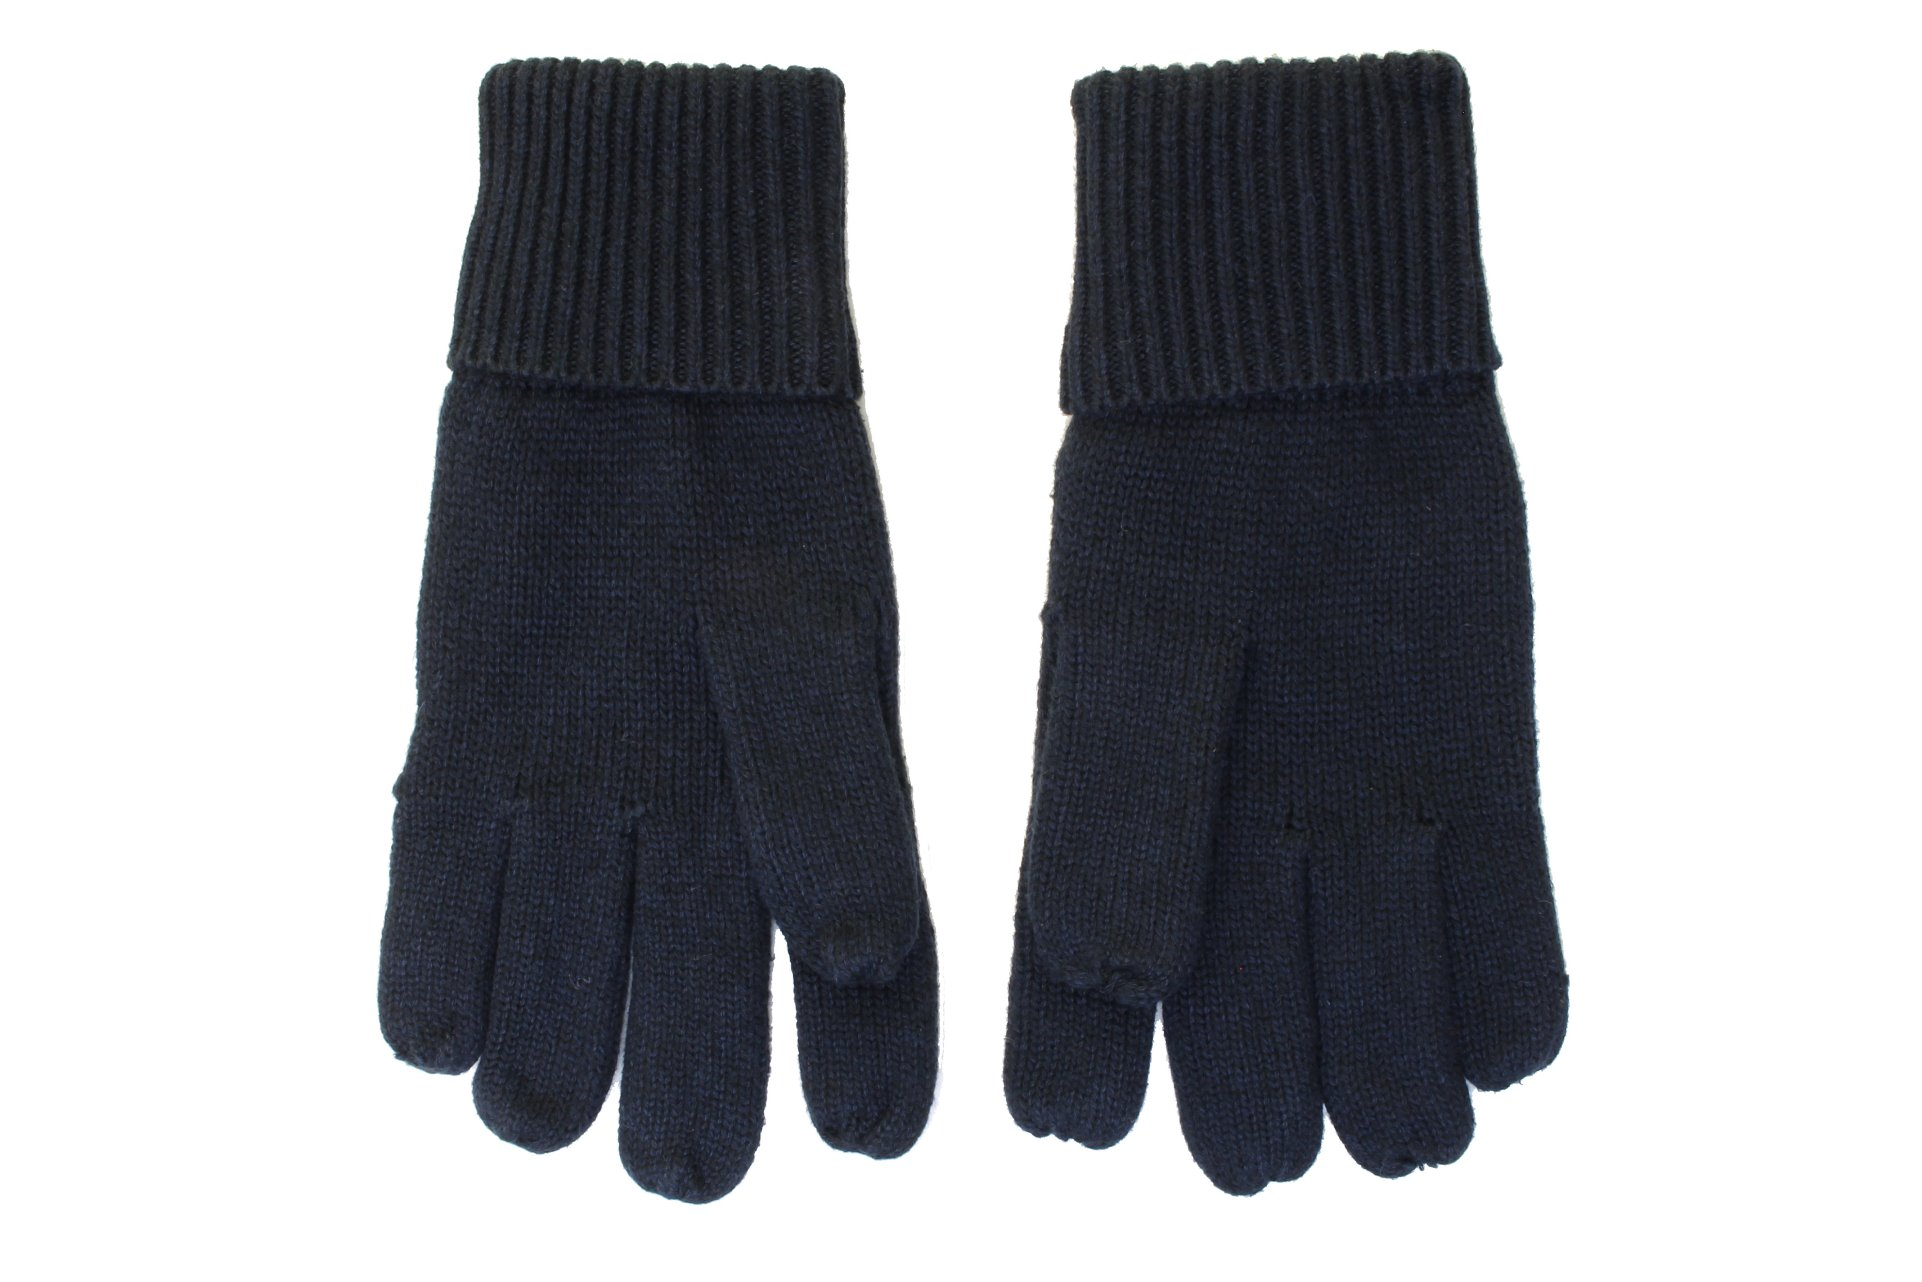 Superdry Orange Label Glove Guantes para Hombre